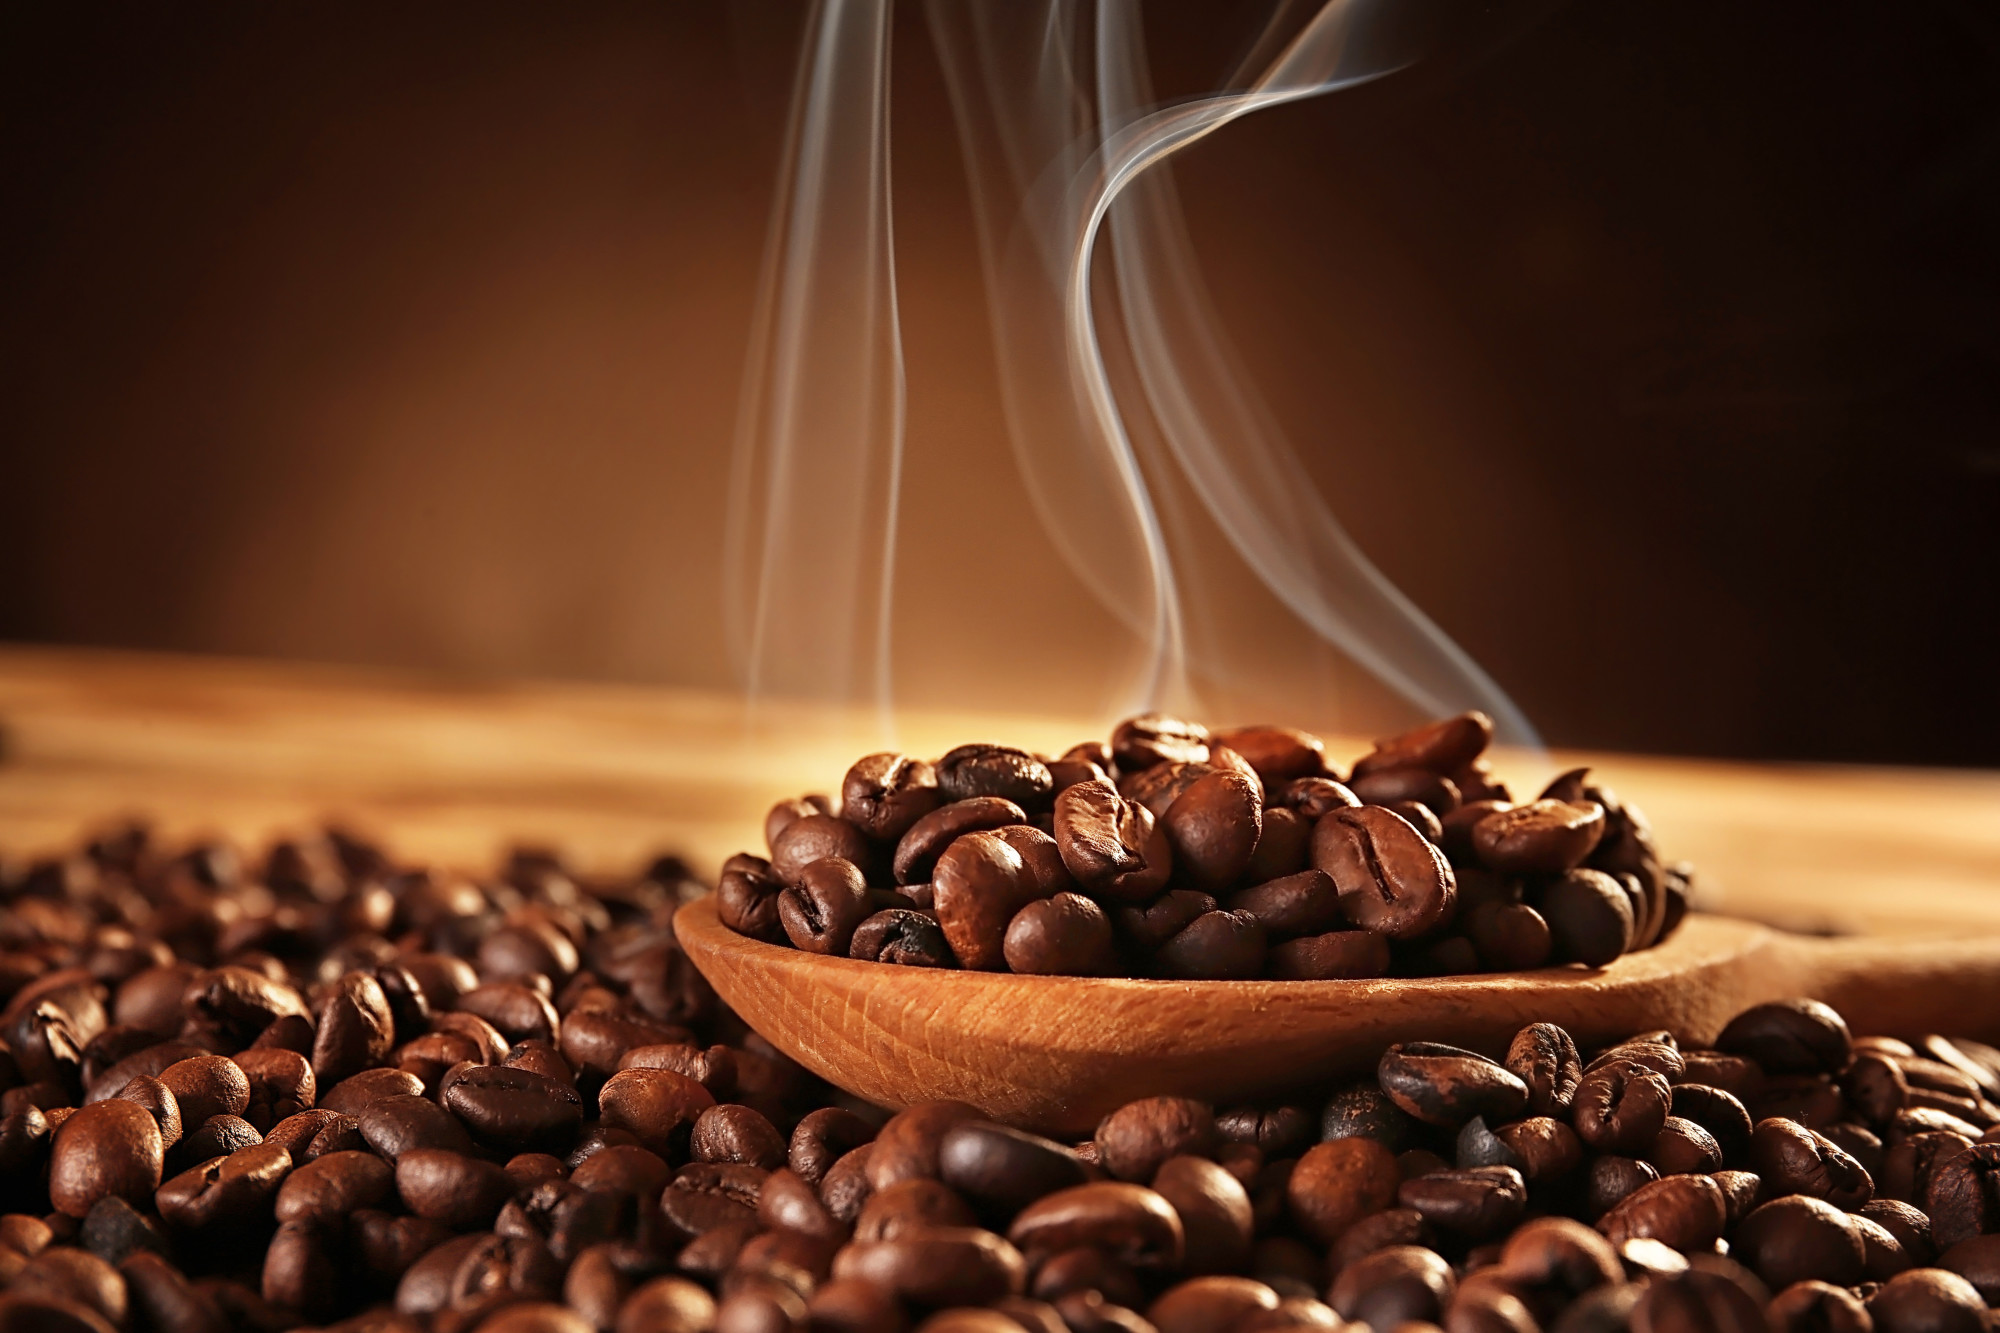 How to Roast Coffee Beans: 3 Options When Roasting Green Coffee ...